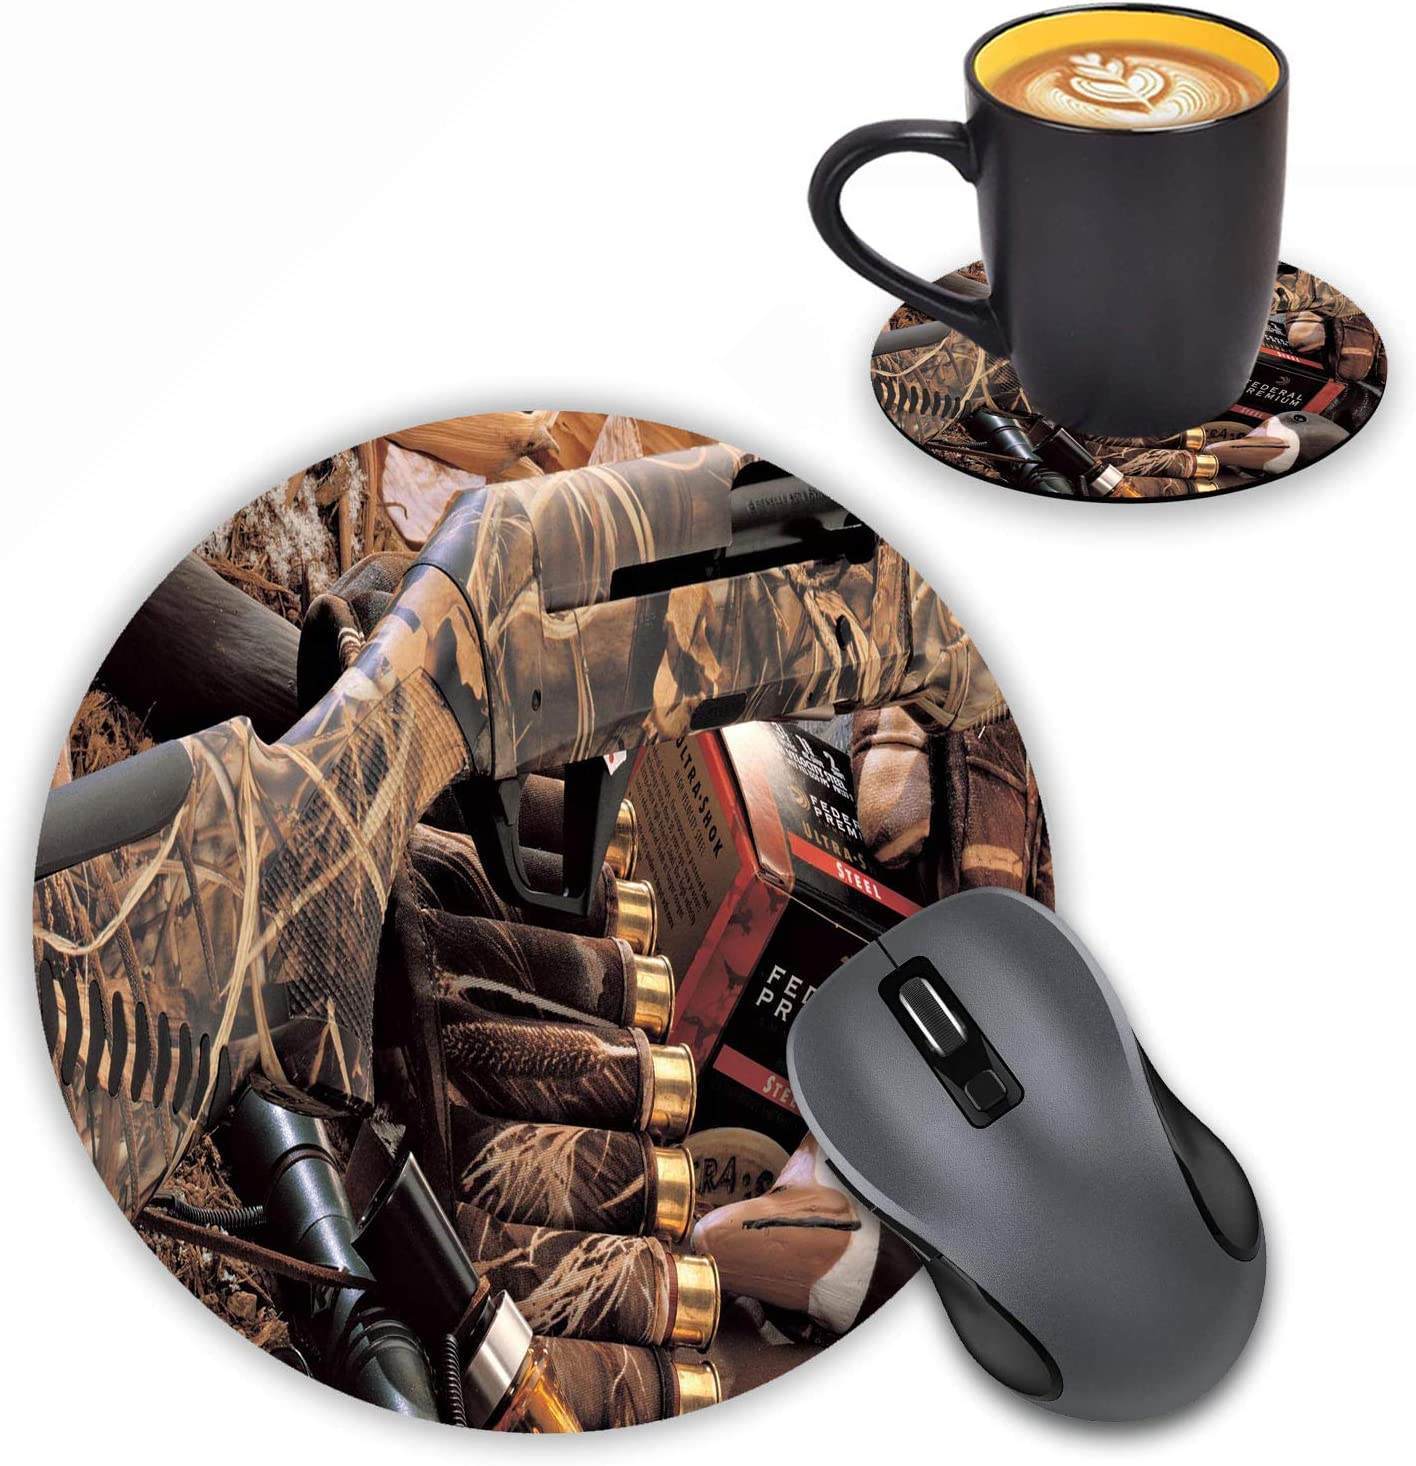 LOWORO Round Mouse Pad with Coasters Set, Duck Hunting Camouflage Shotgun Bullets Decoy Design Mouse Pad Non-Slip Rubber Mousepad Office Accessories Desk Decor Mouse Pads for Computers Laptop